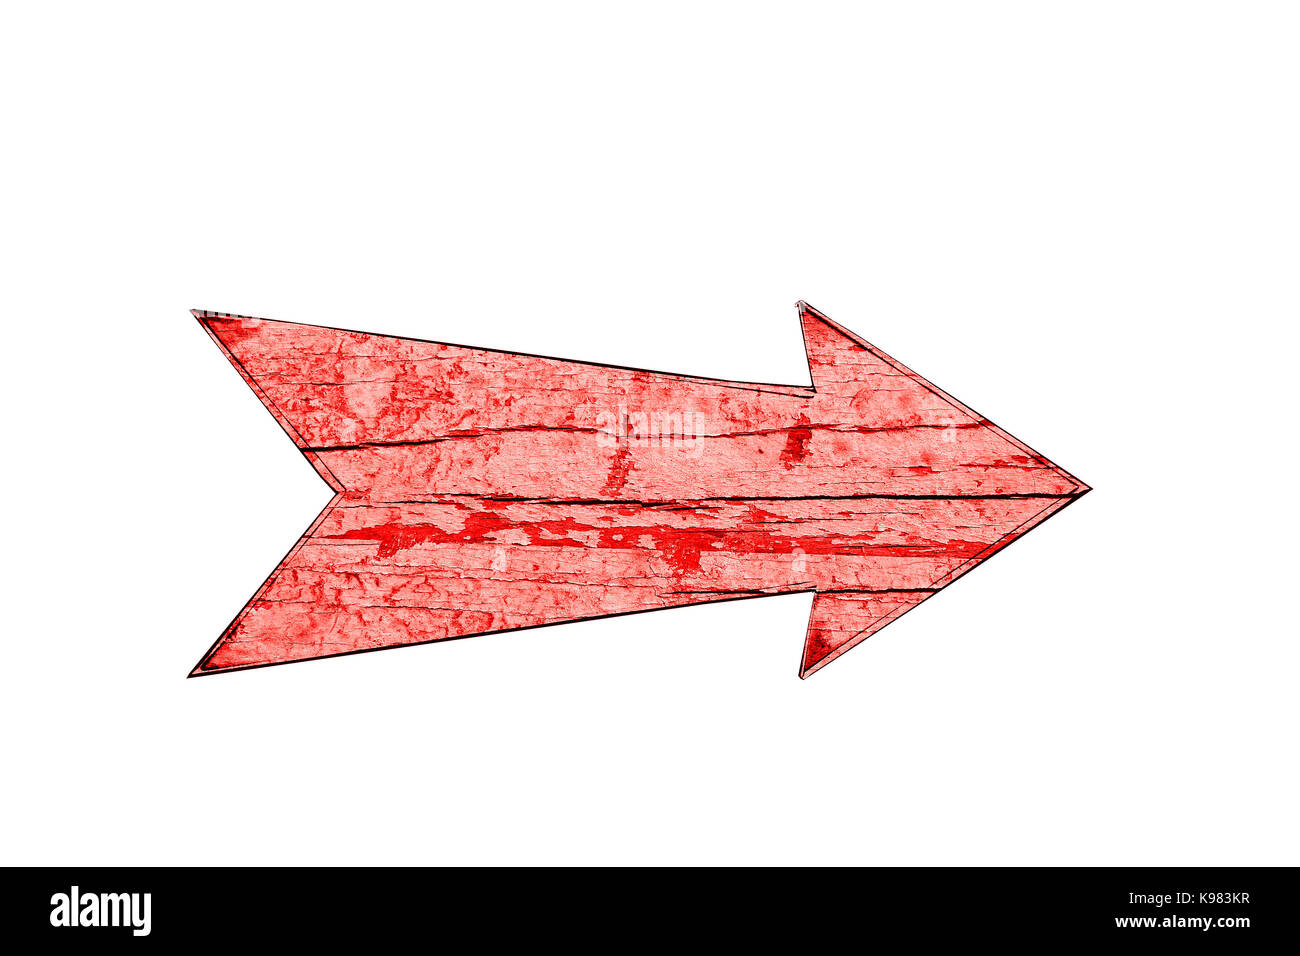 red vintage wooden direction arrow sign on a cracked and peeling red